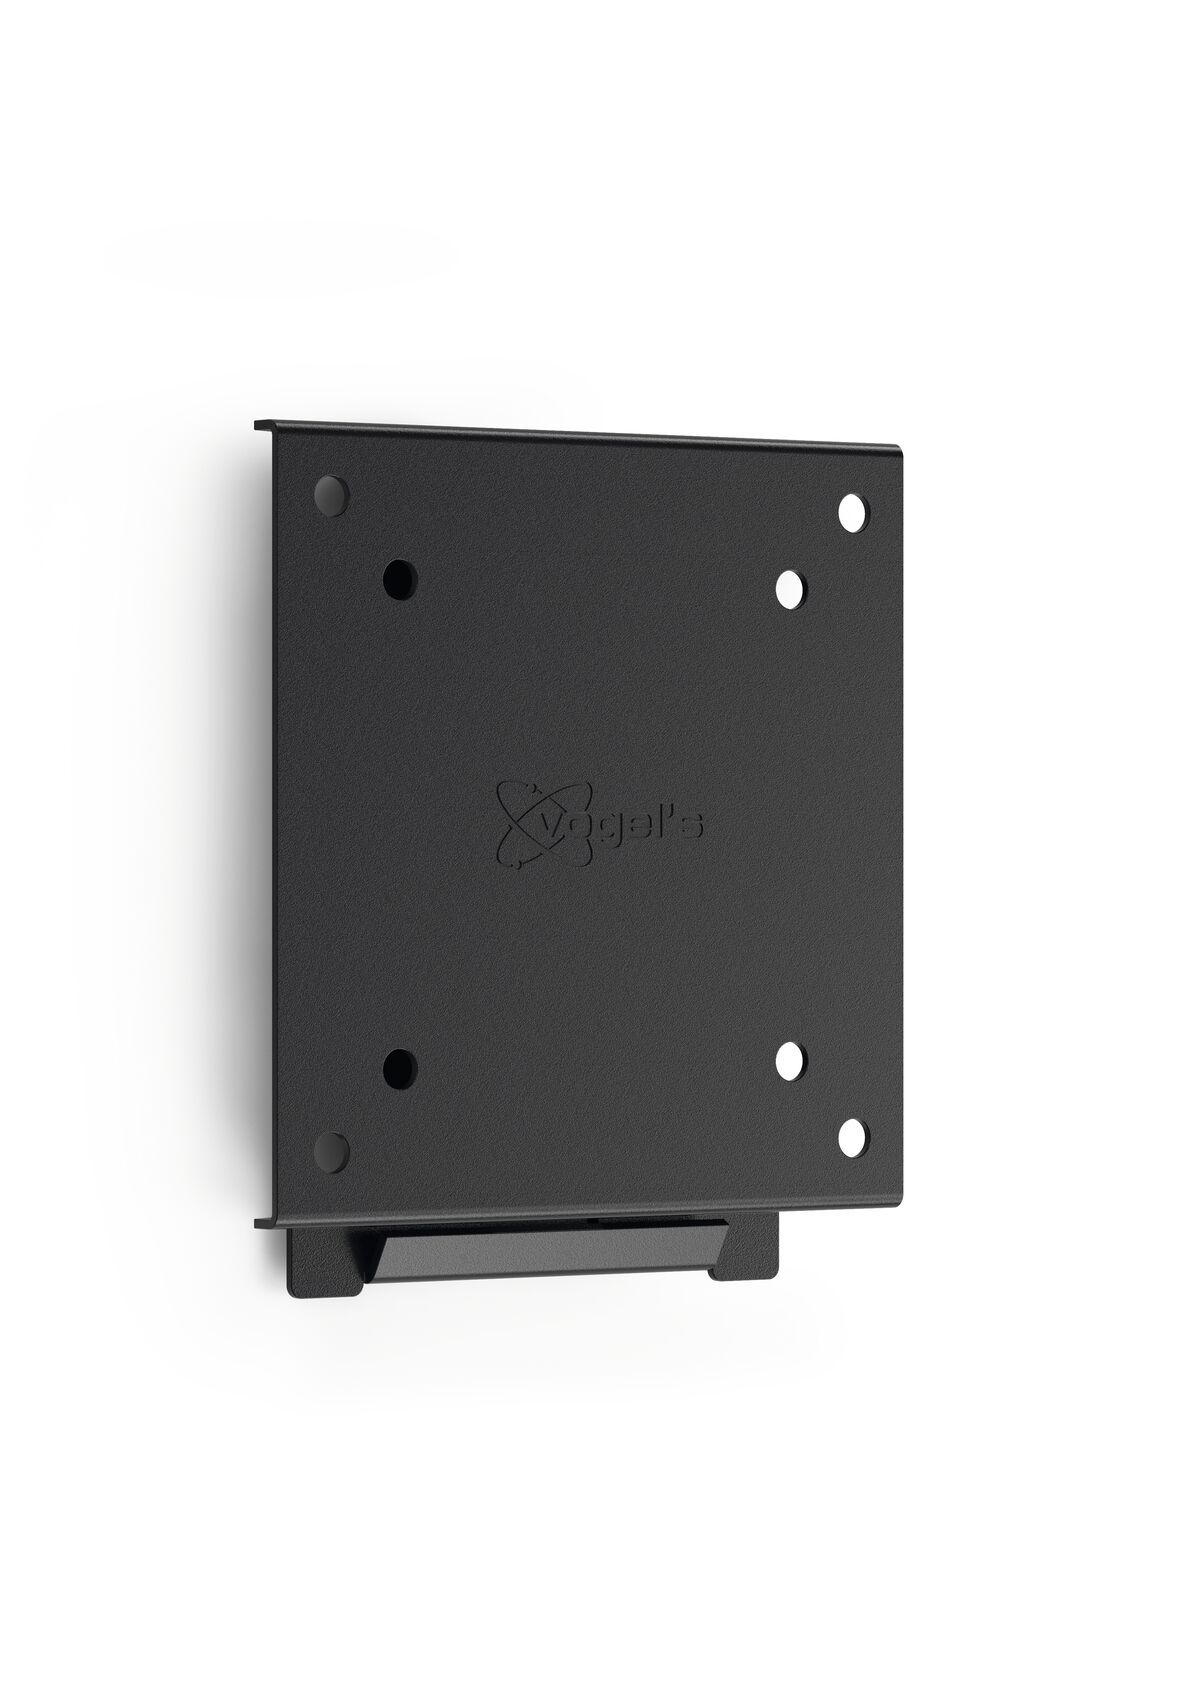 Vogel's MA 1000 (A1) Fixed TV Wall Mount - Suitable for 17 up to 26 inch TVs up to 30 kg - Product